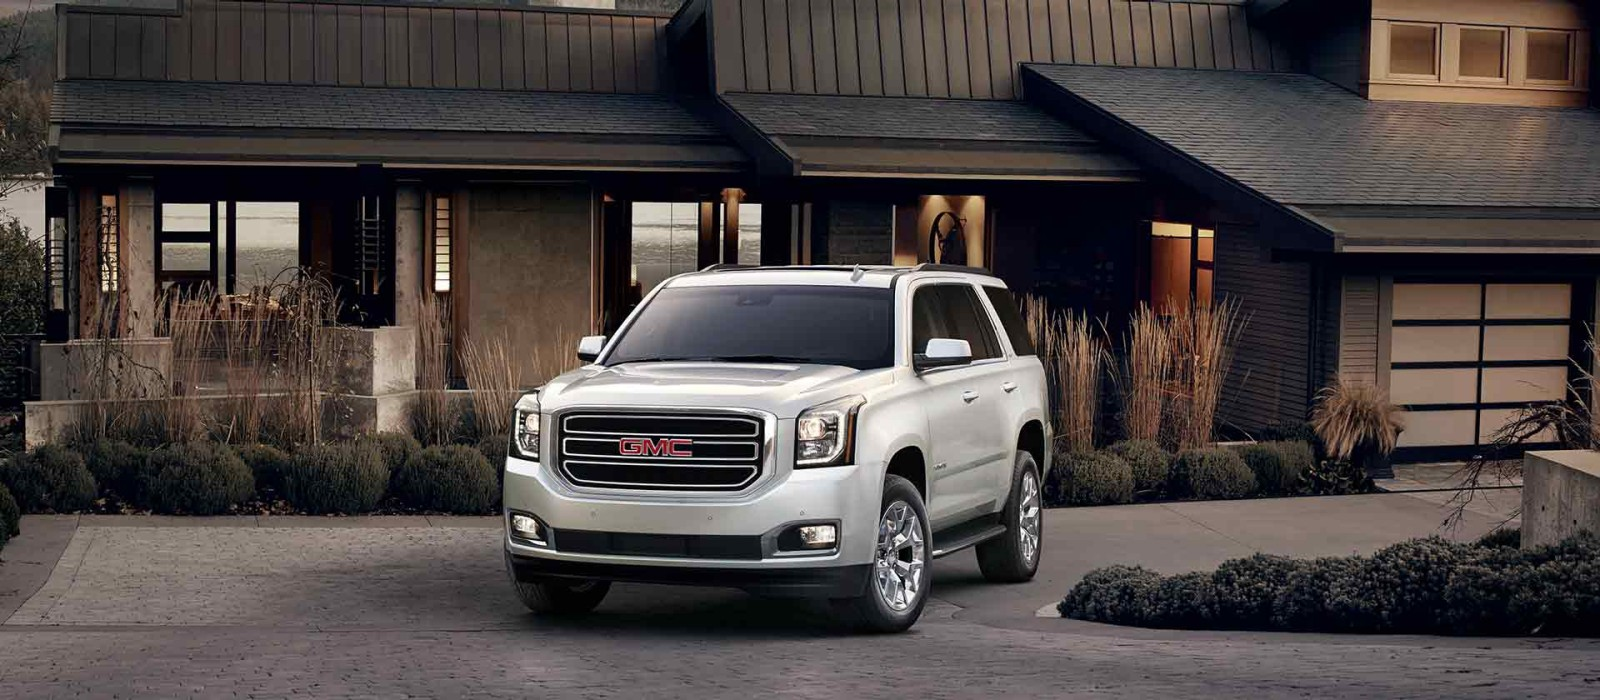 gmc click shop des moines buick used dealership billion and drive new vehicle of